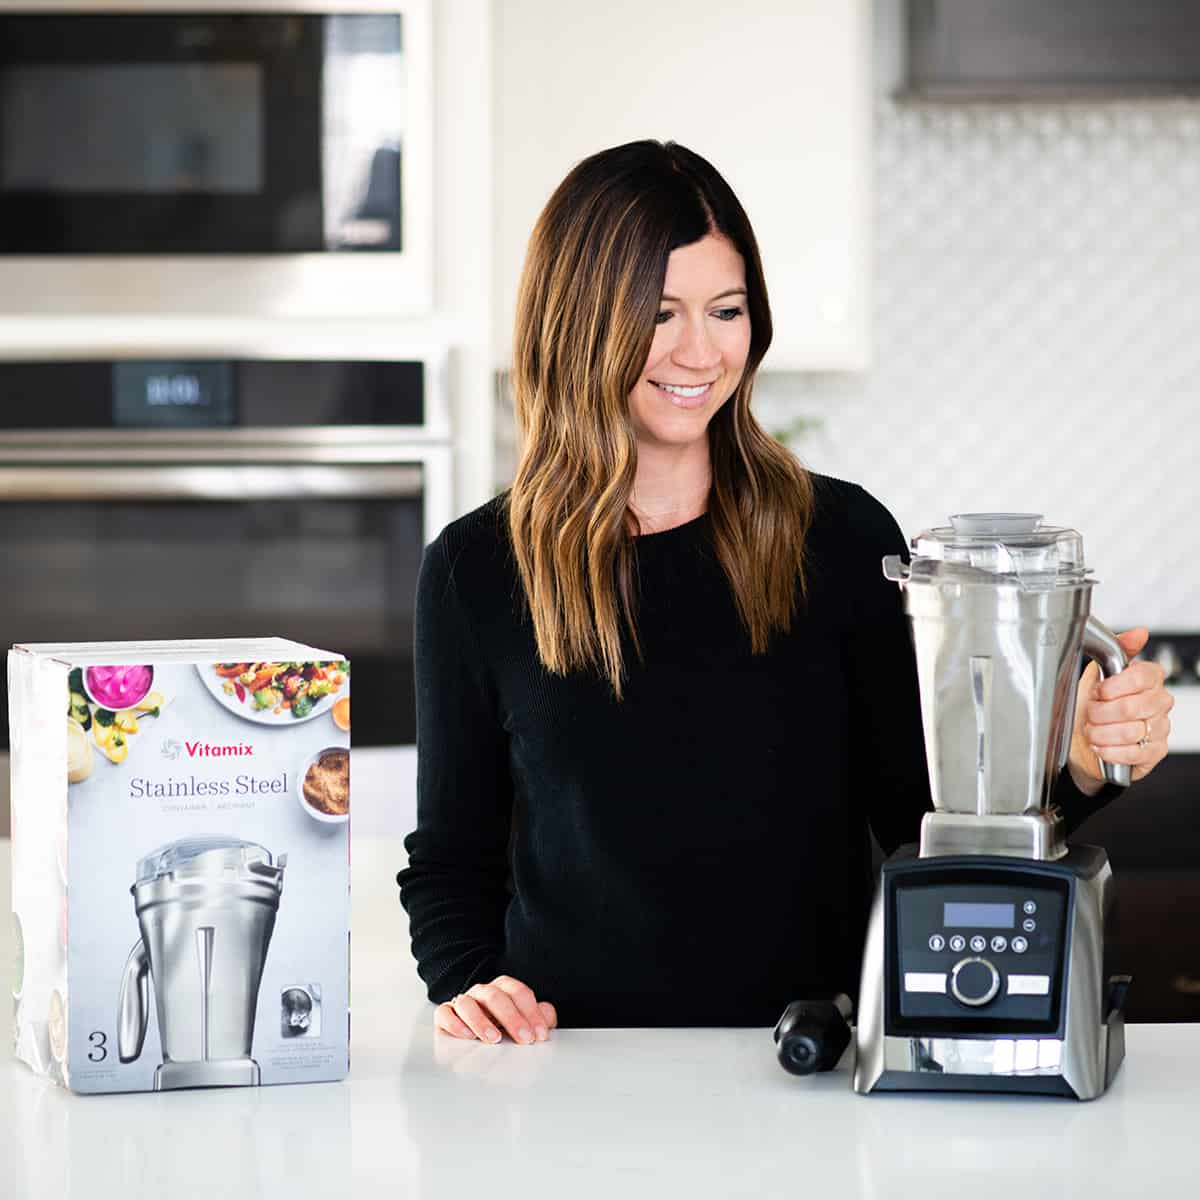 front view of woman holding Vitamix stainless steel container